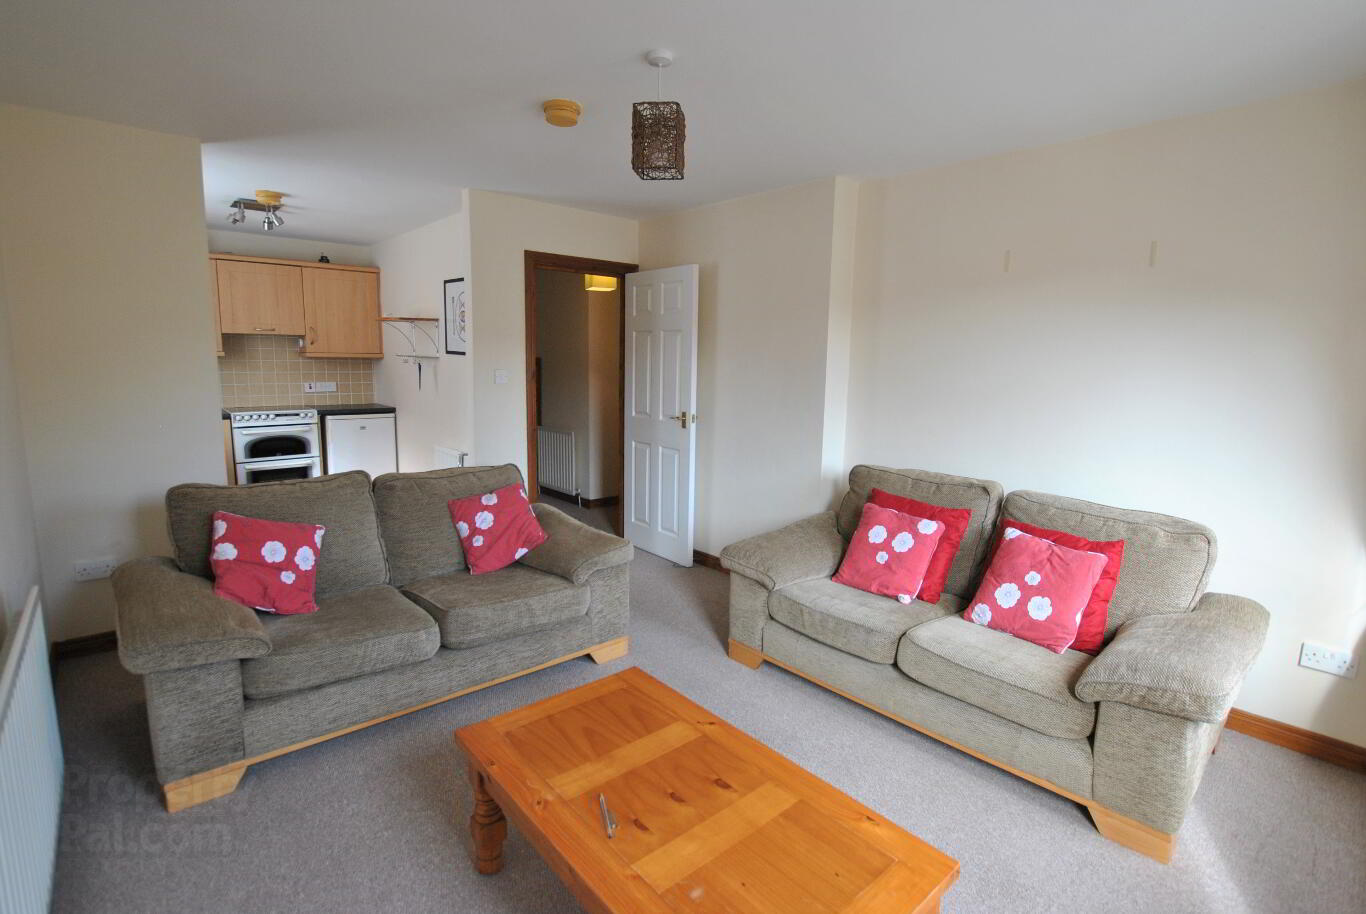 Couch To 5k Newtownards Apartment 9 22 Stanfield Court Newtownards Propertypal